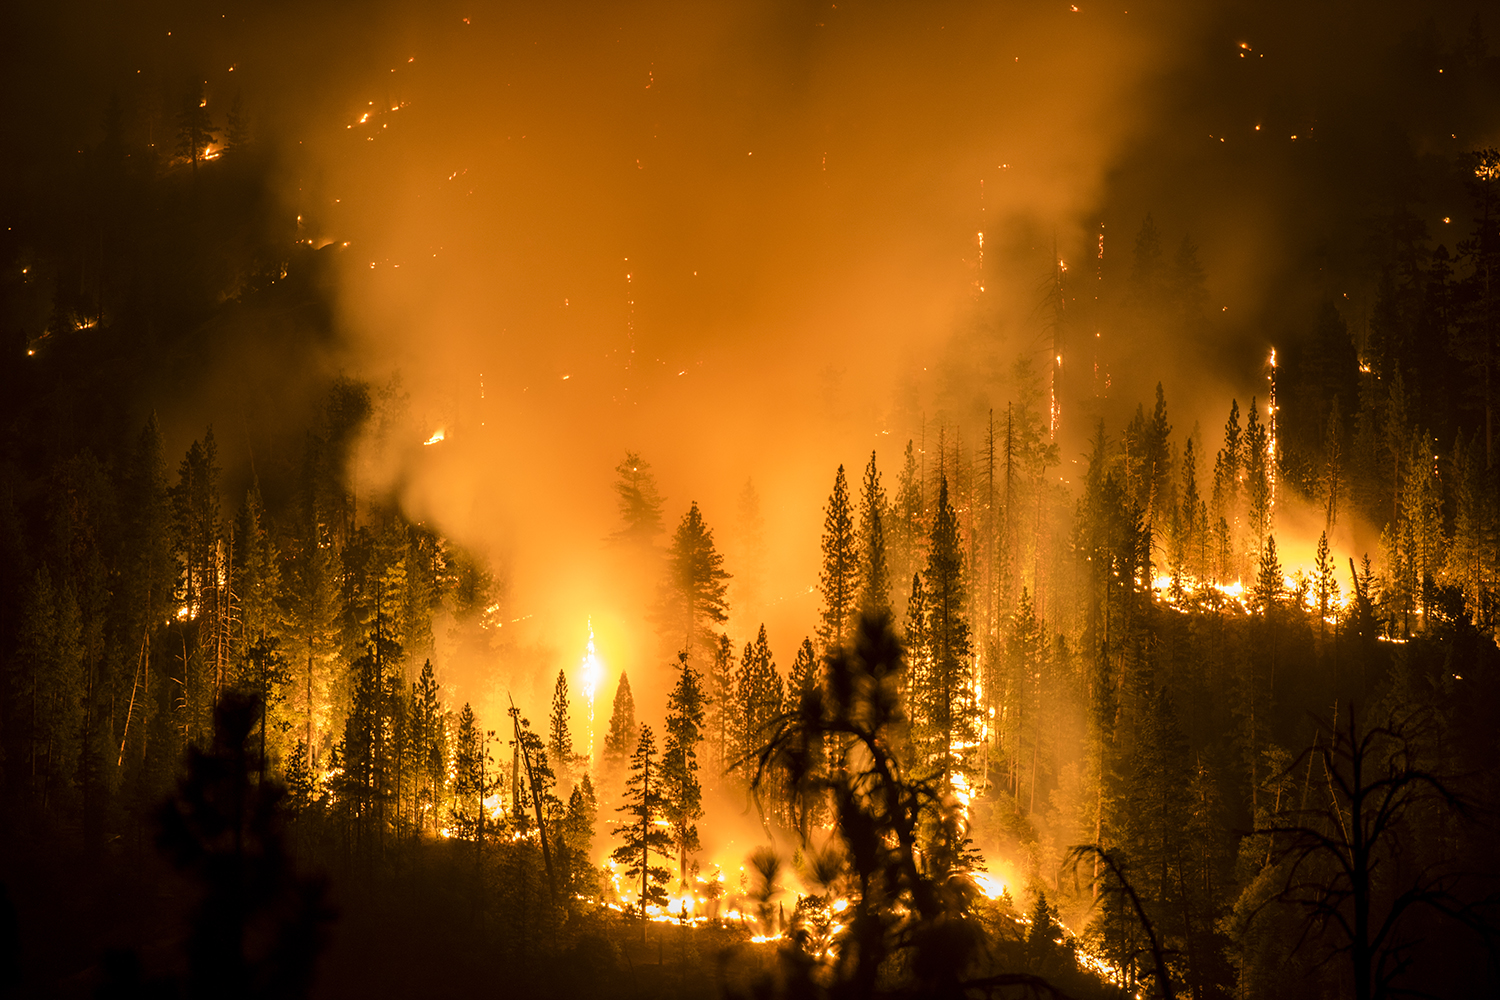 The French Fire burns overnight in the Sierra National Forest near Mammoth Pool, Calif. By morning  the fire had burned over 11,400 acres. August 1, 2014.